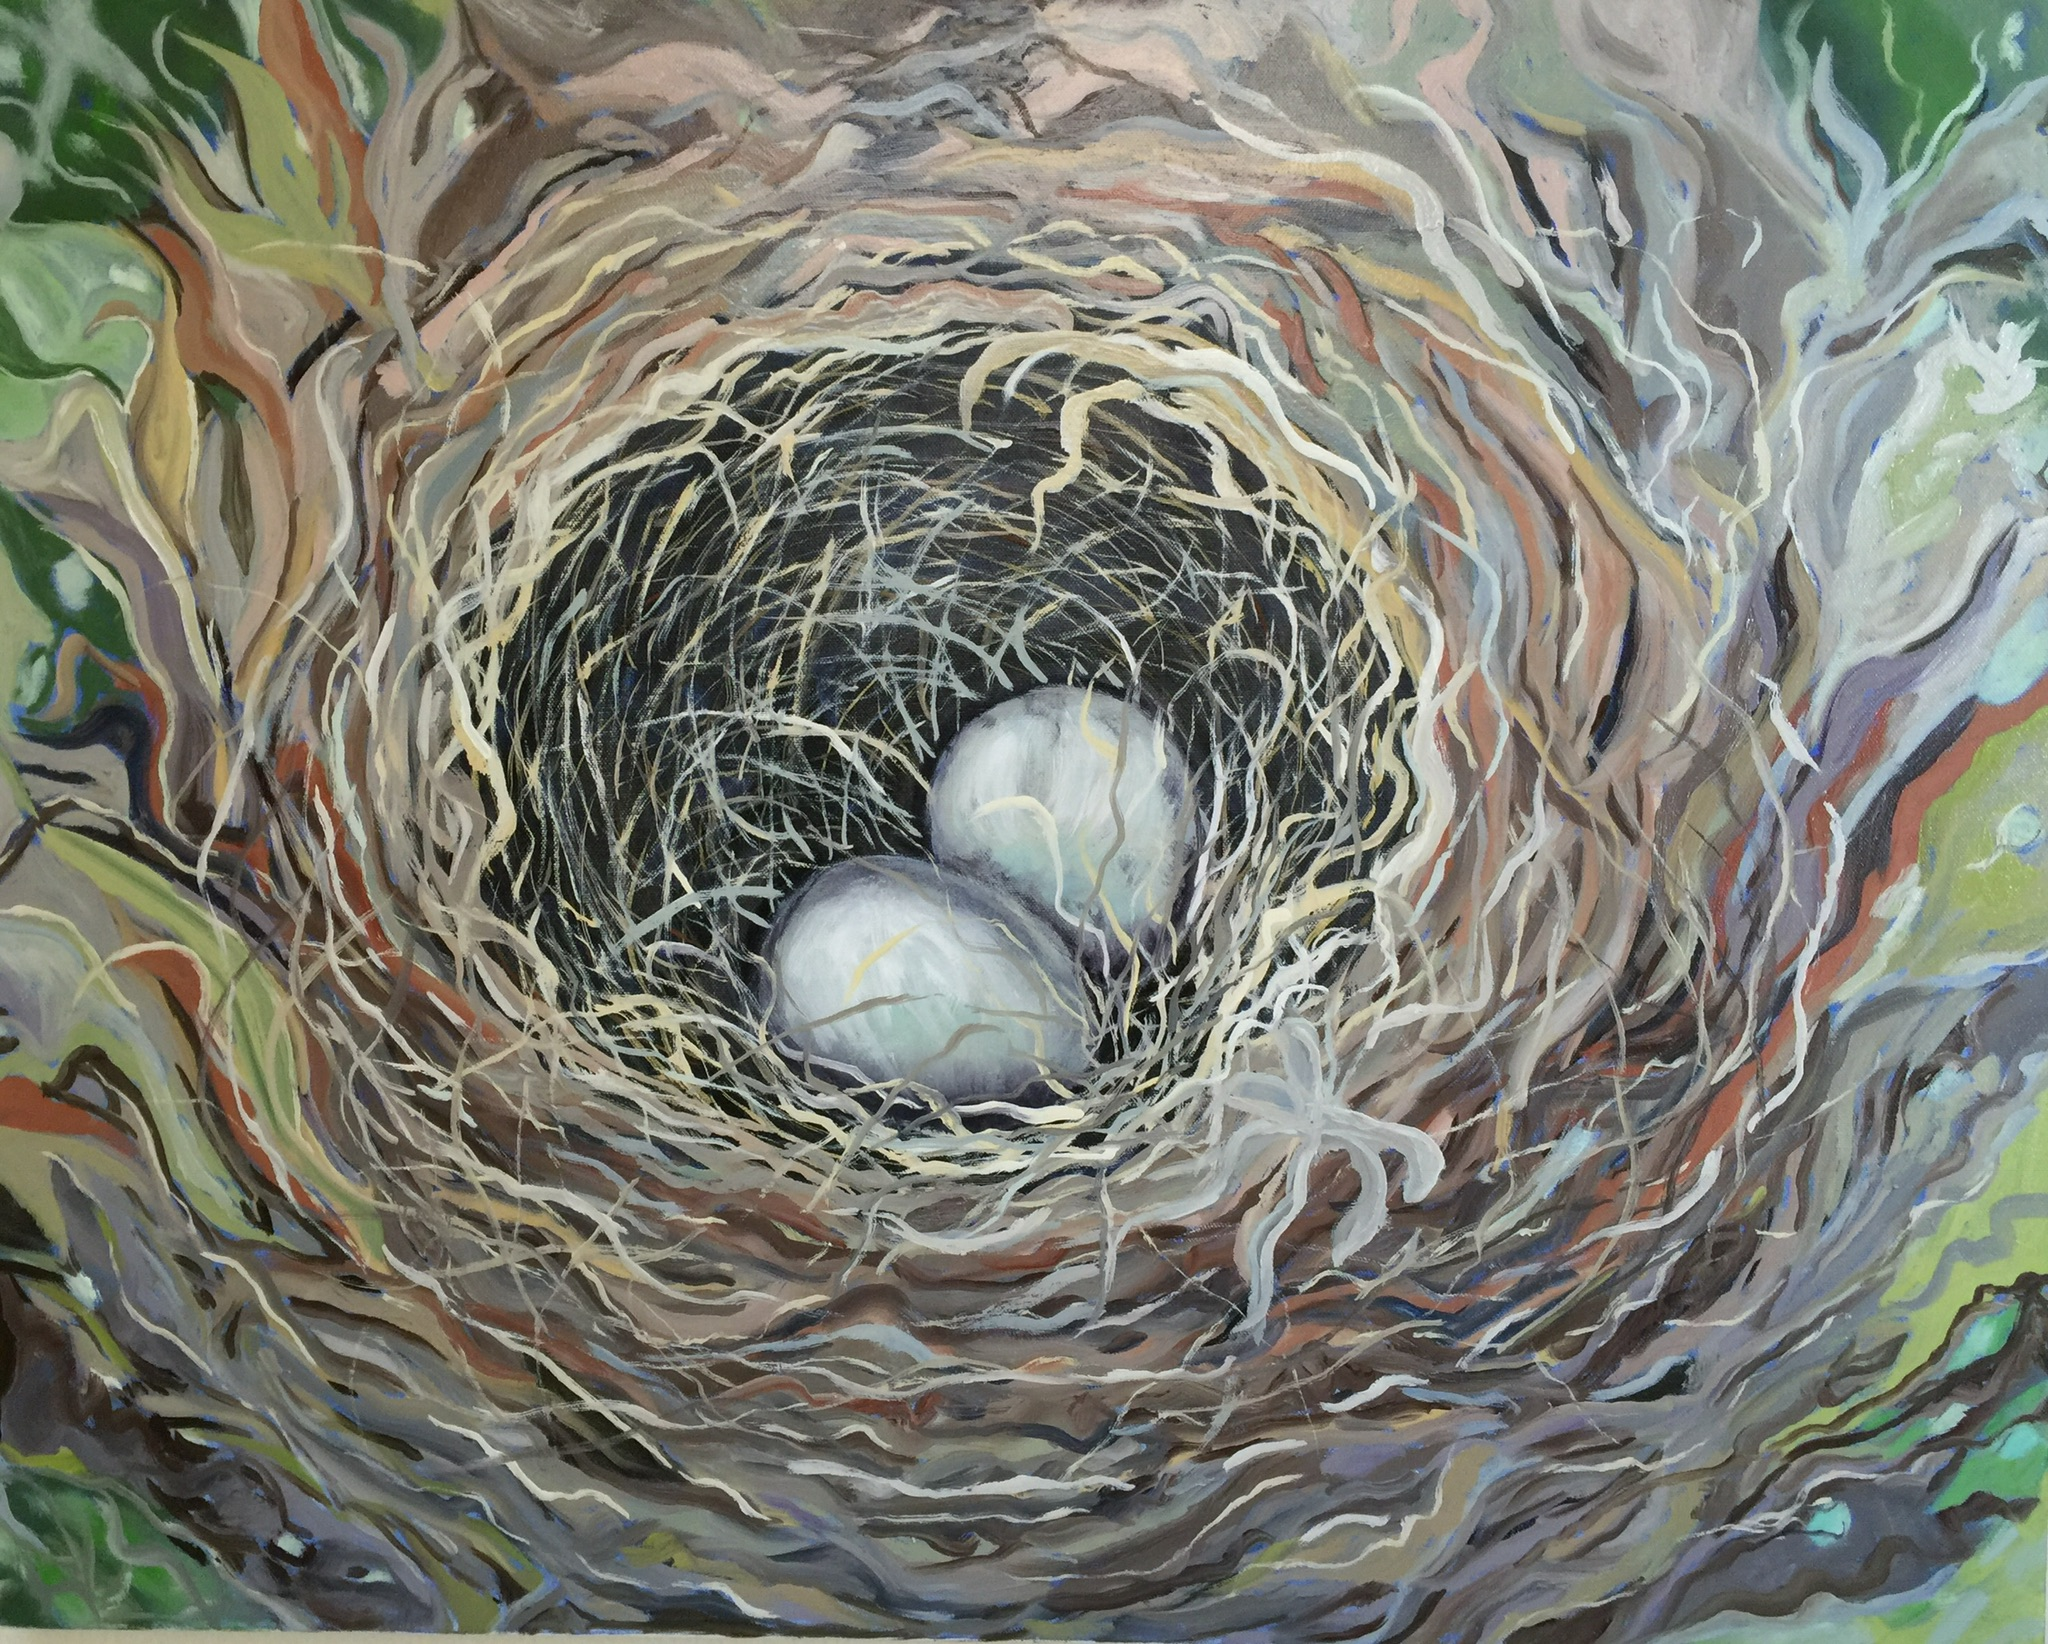 Nest, 48x48, Oil on Canvas.